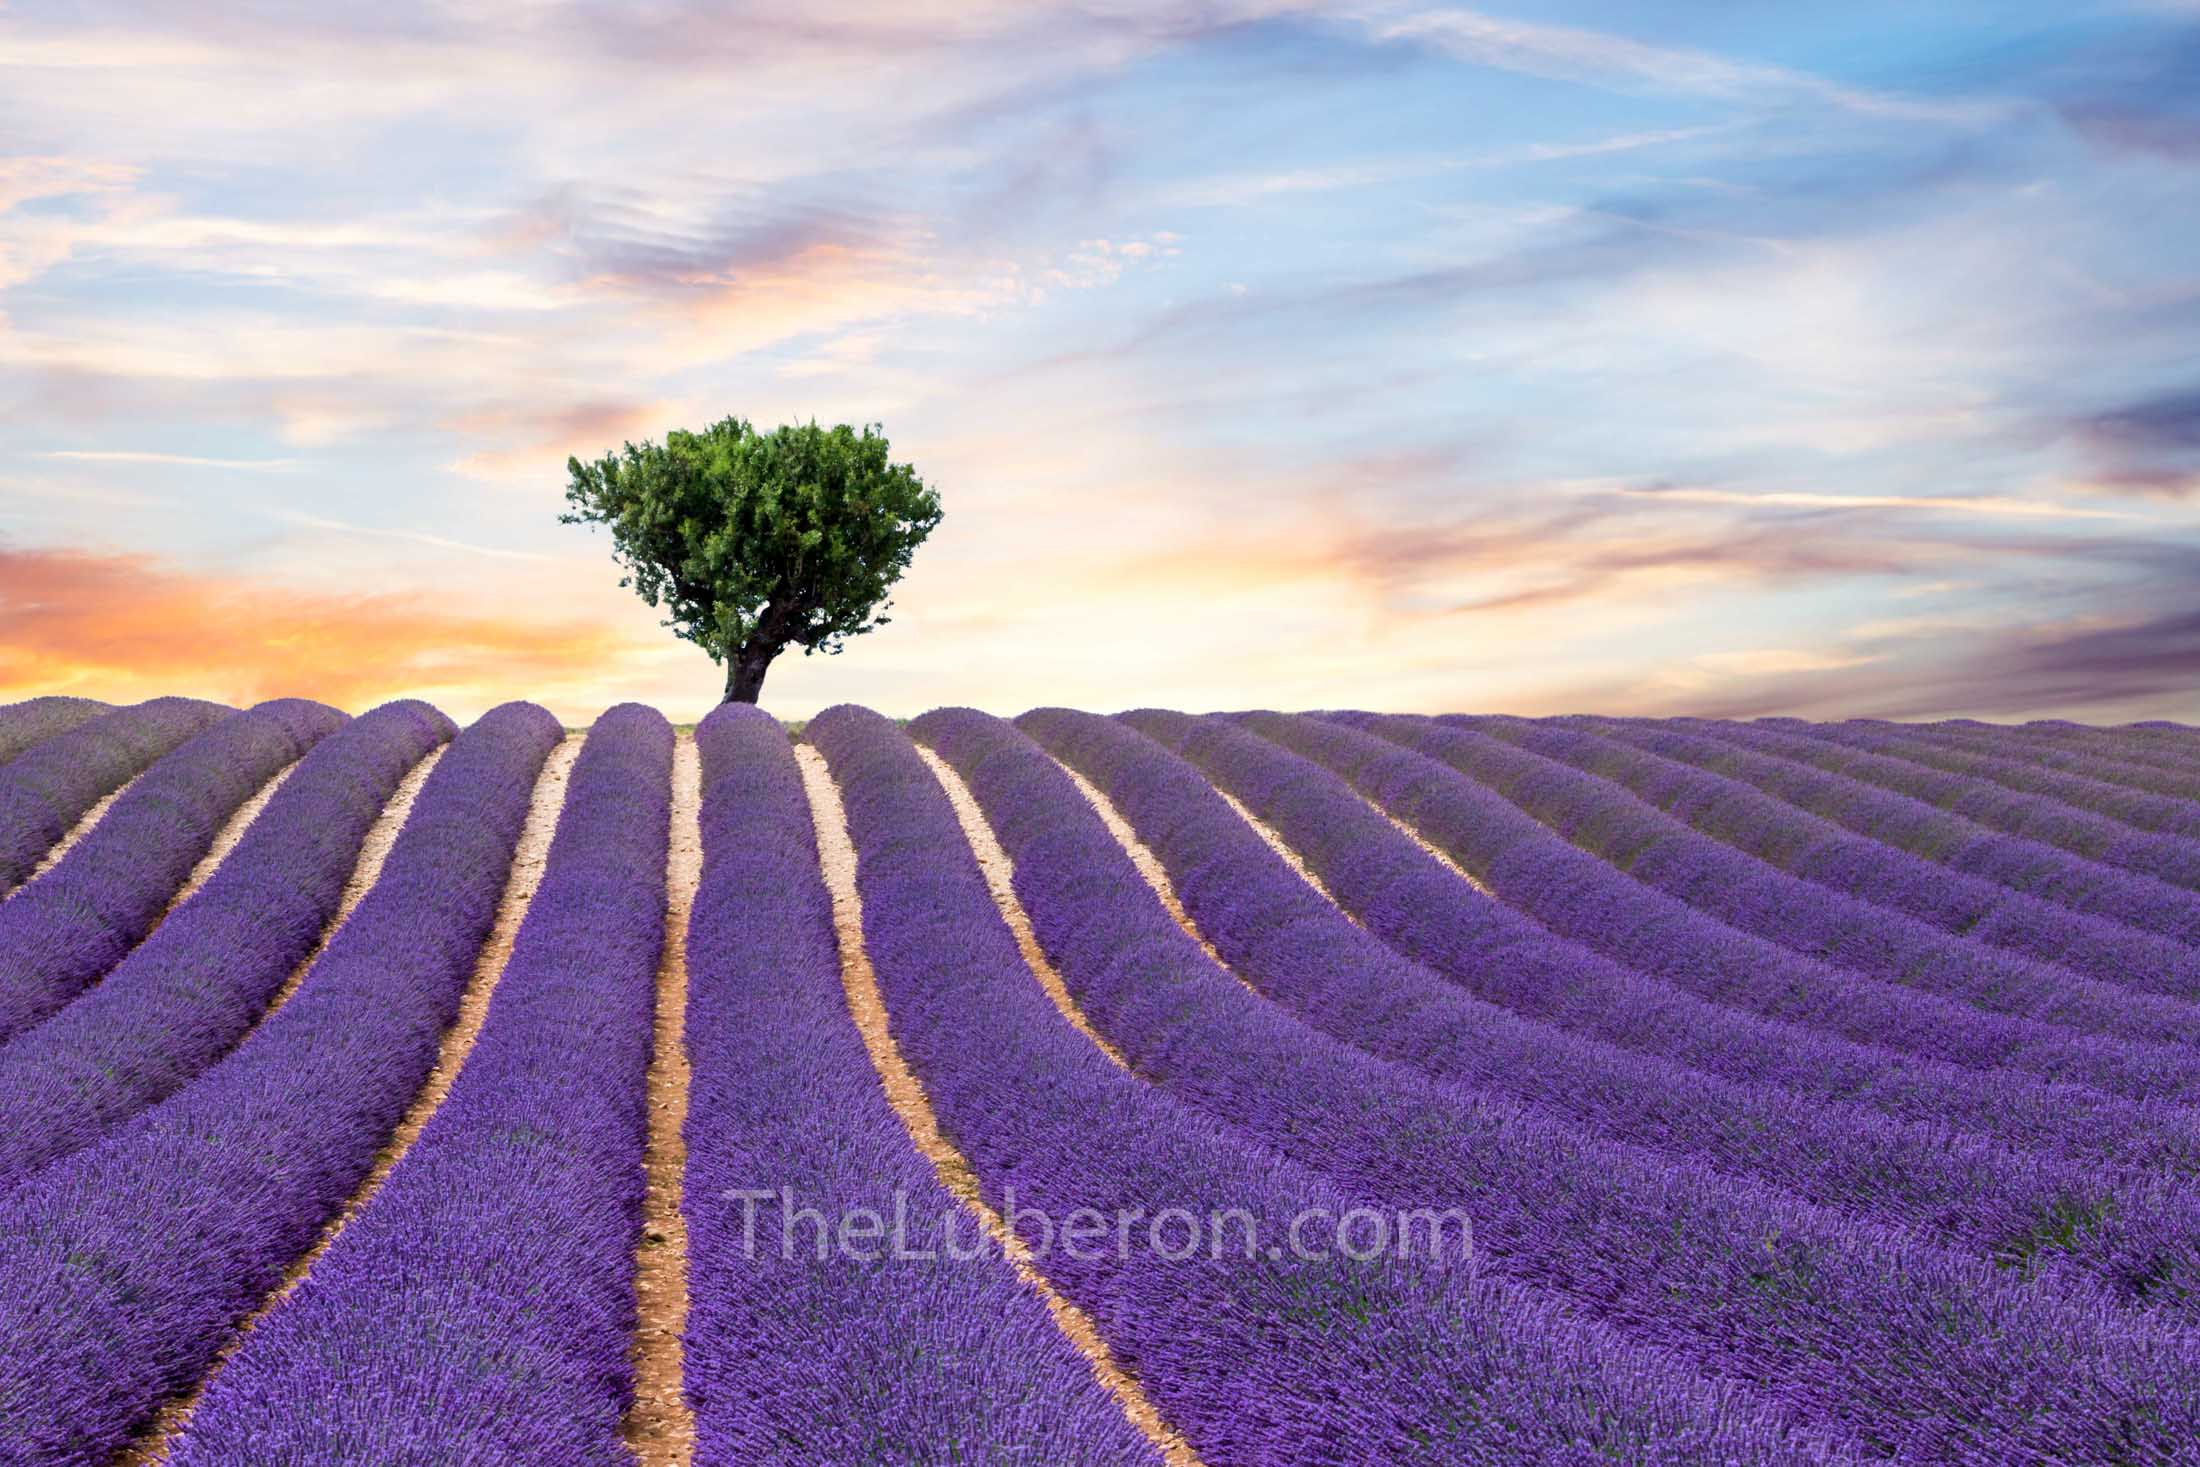 Tree and lavender field